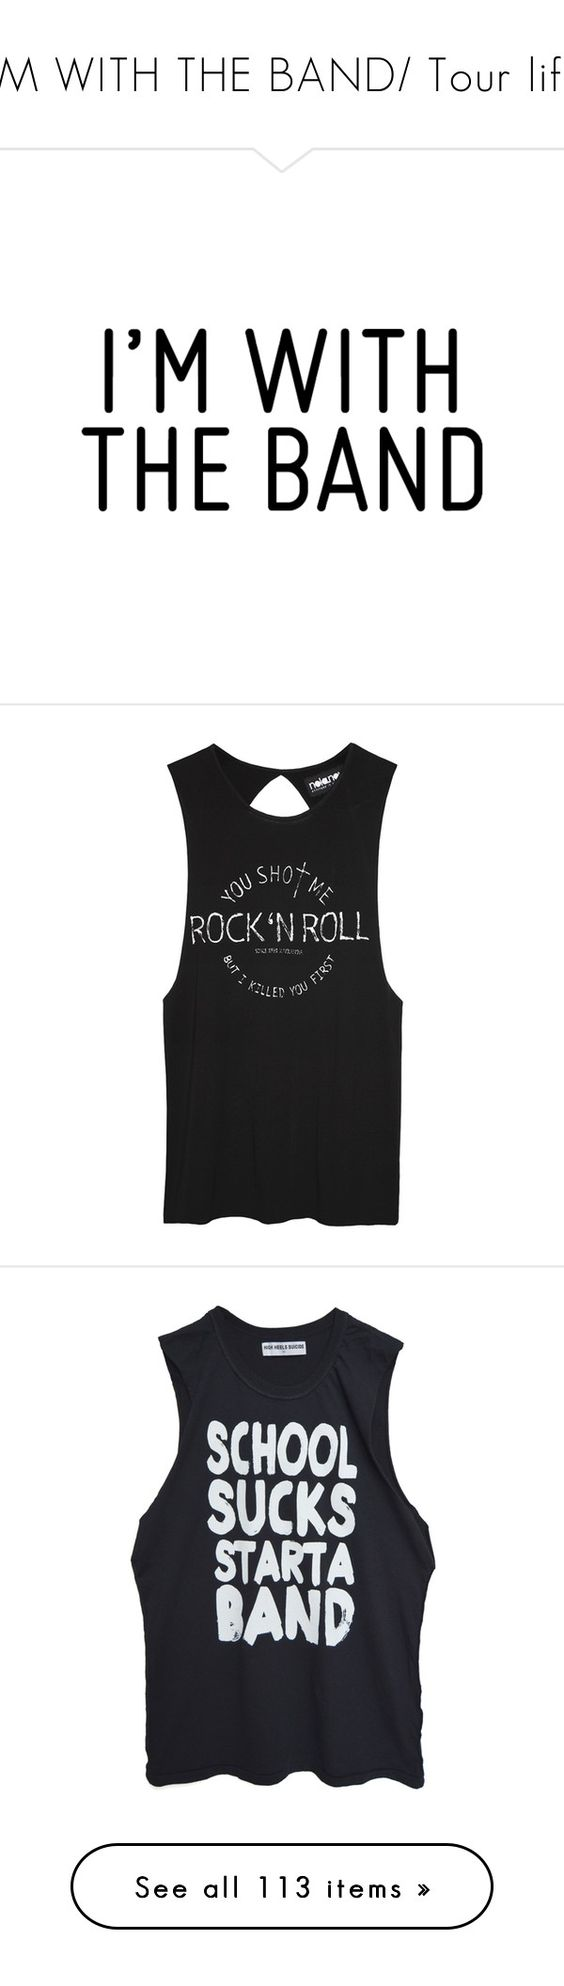 """i'M WITH THE BAND/ Tour life"" by drunk-inlove ❤ liked on Polyvore featuring tops, shirts, tank tops, tanks, sexy shirts, sexy tops, off white shirt, muscle t shirt, rock n roll shirts and women"